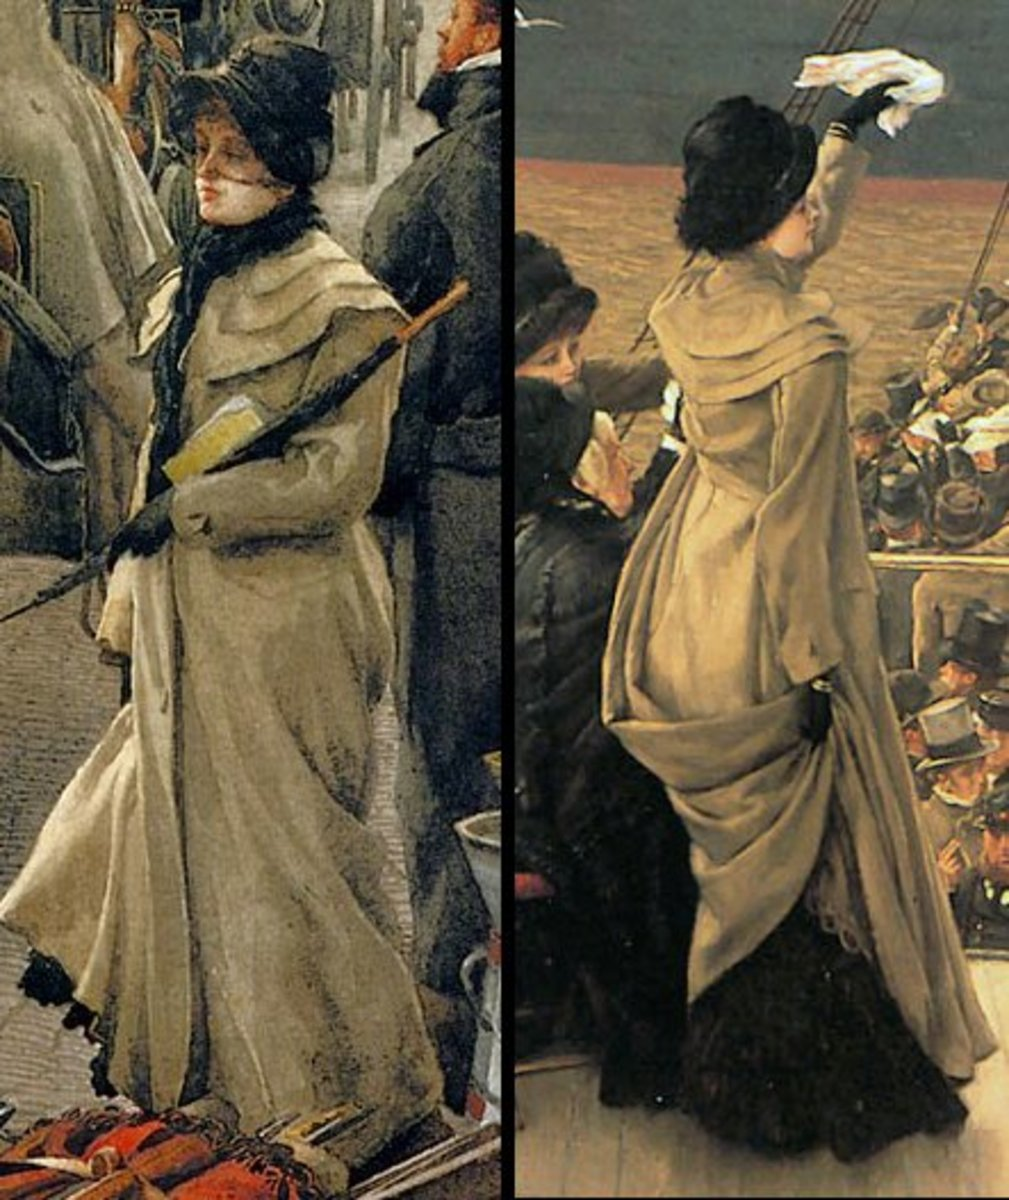 From a painting by James Tissot